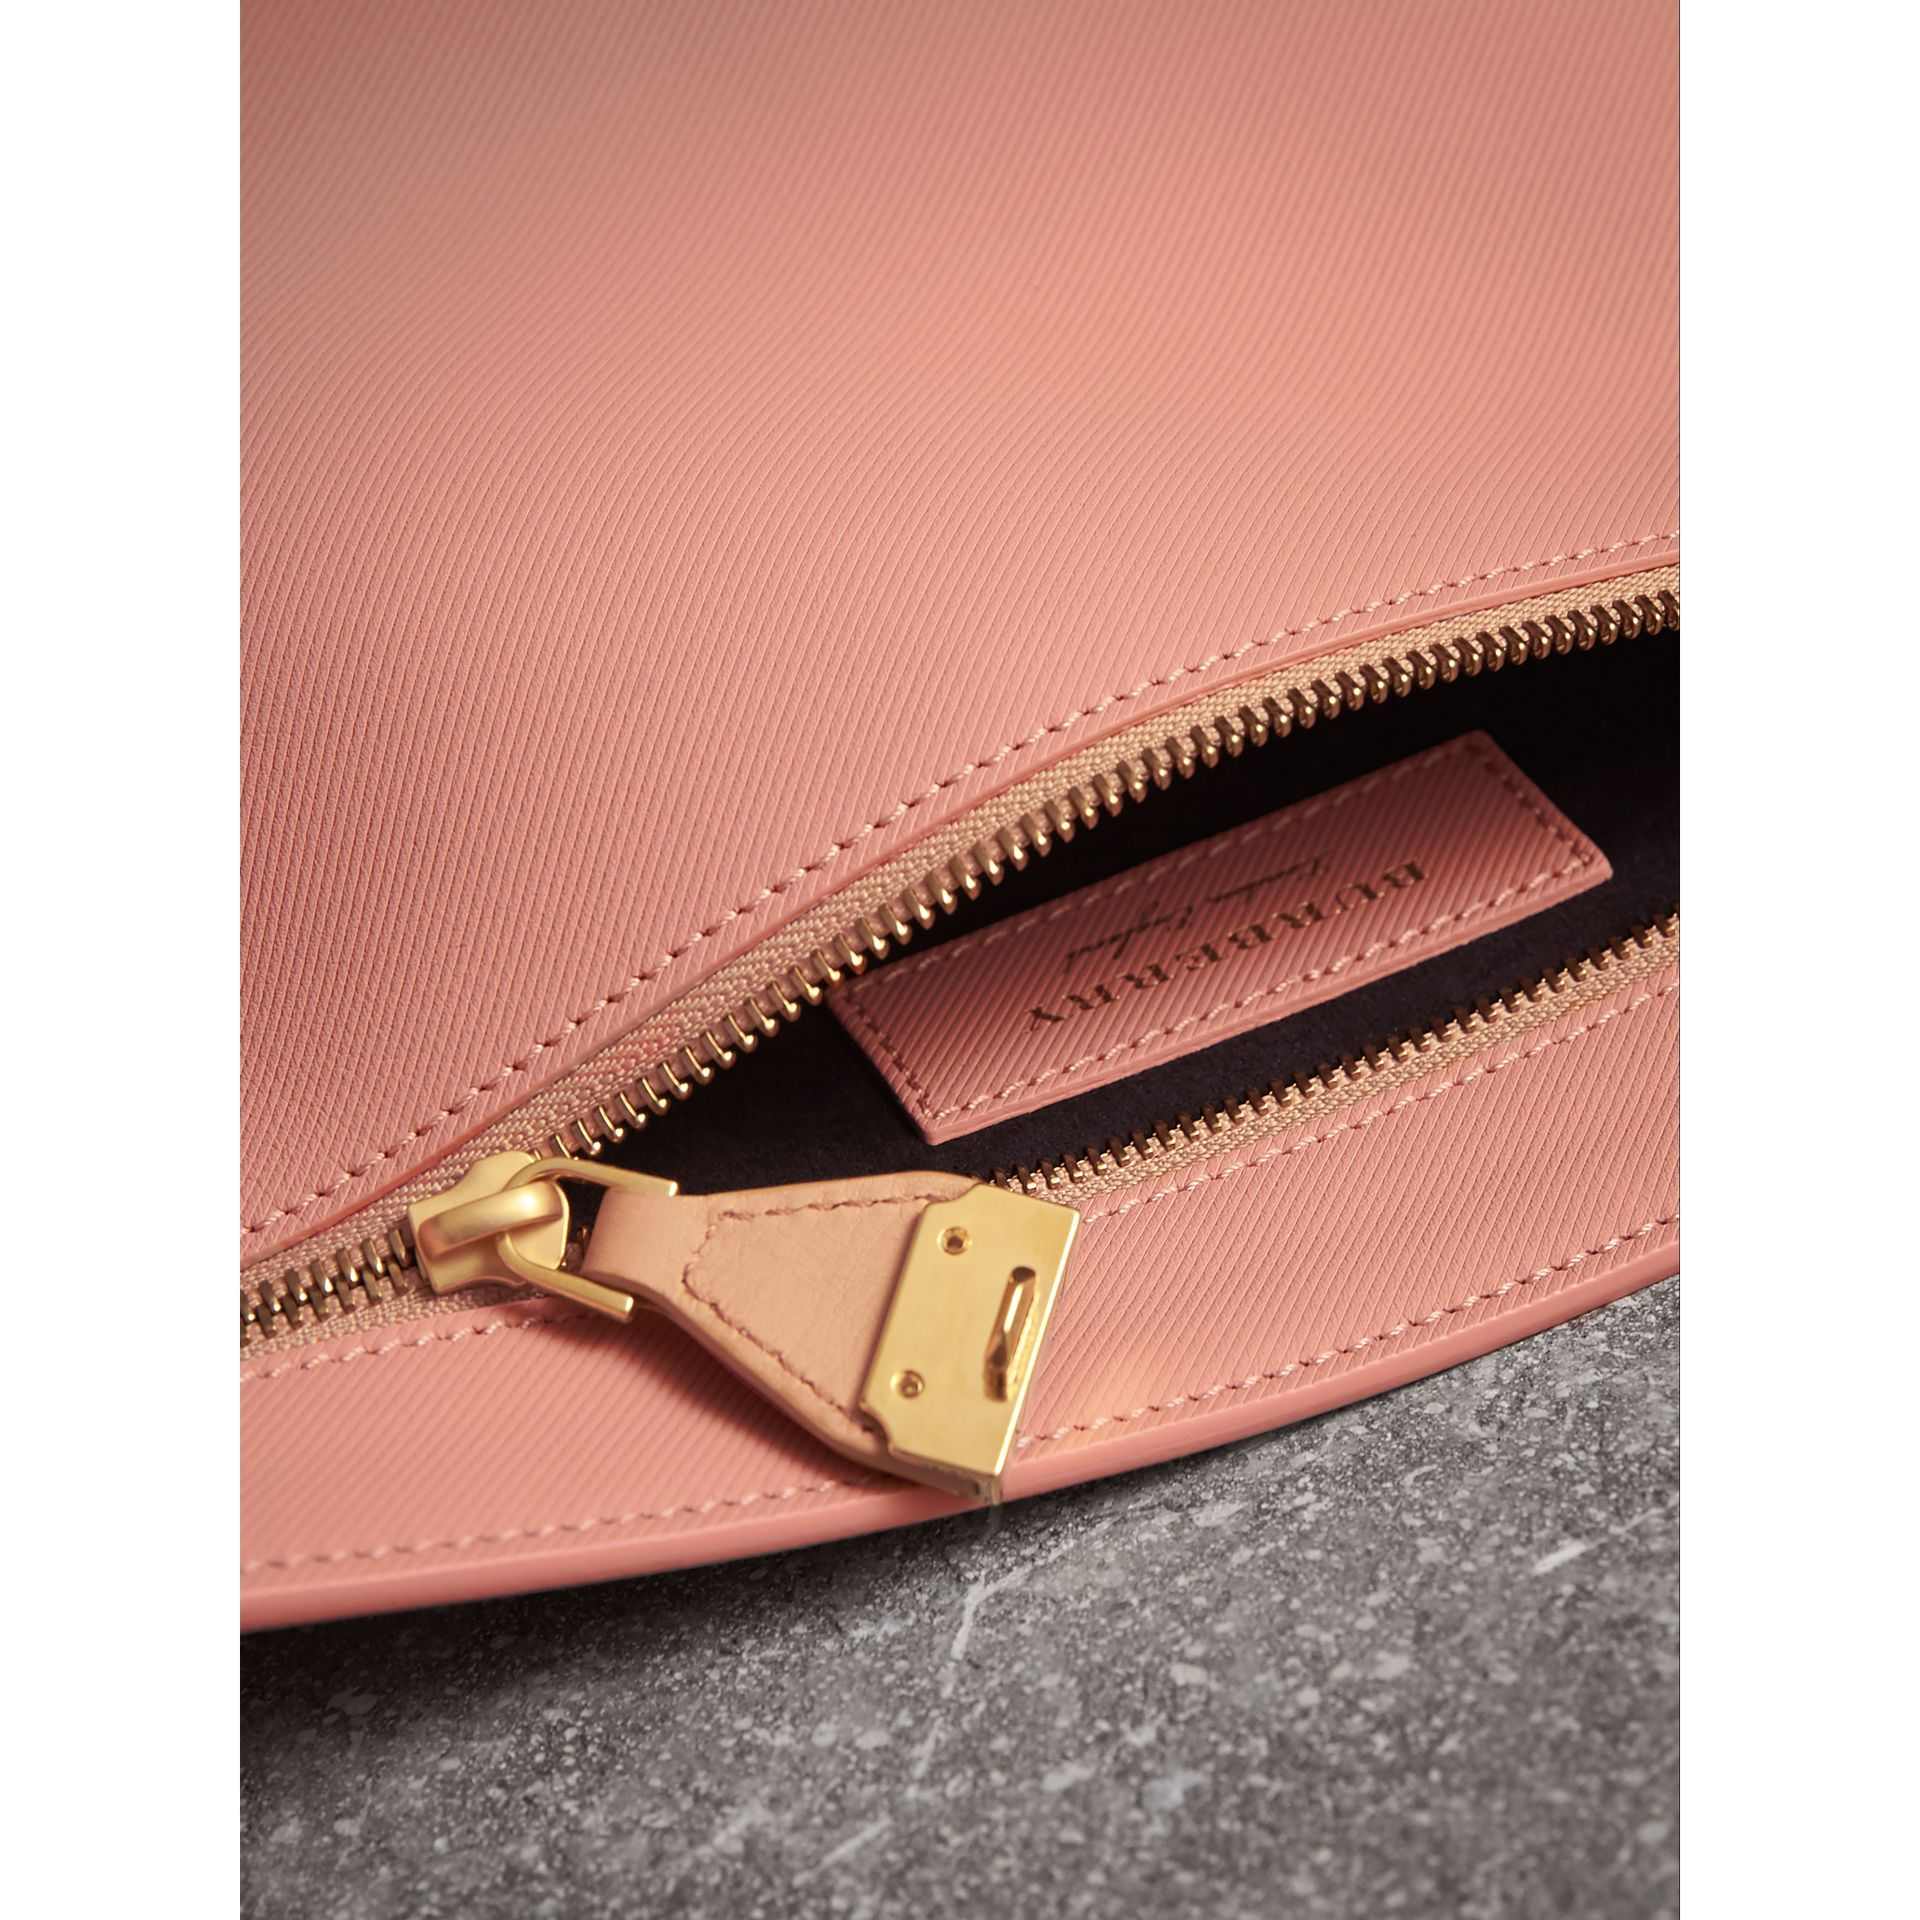 Two-tone Trench Leather Wristlet Pouch in Ash Rose/pale Clementine - Women | Burberry United Kingdom - gallery image 4